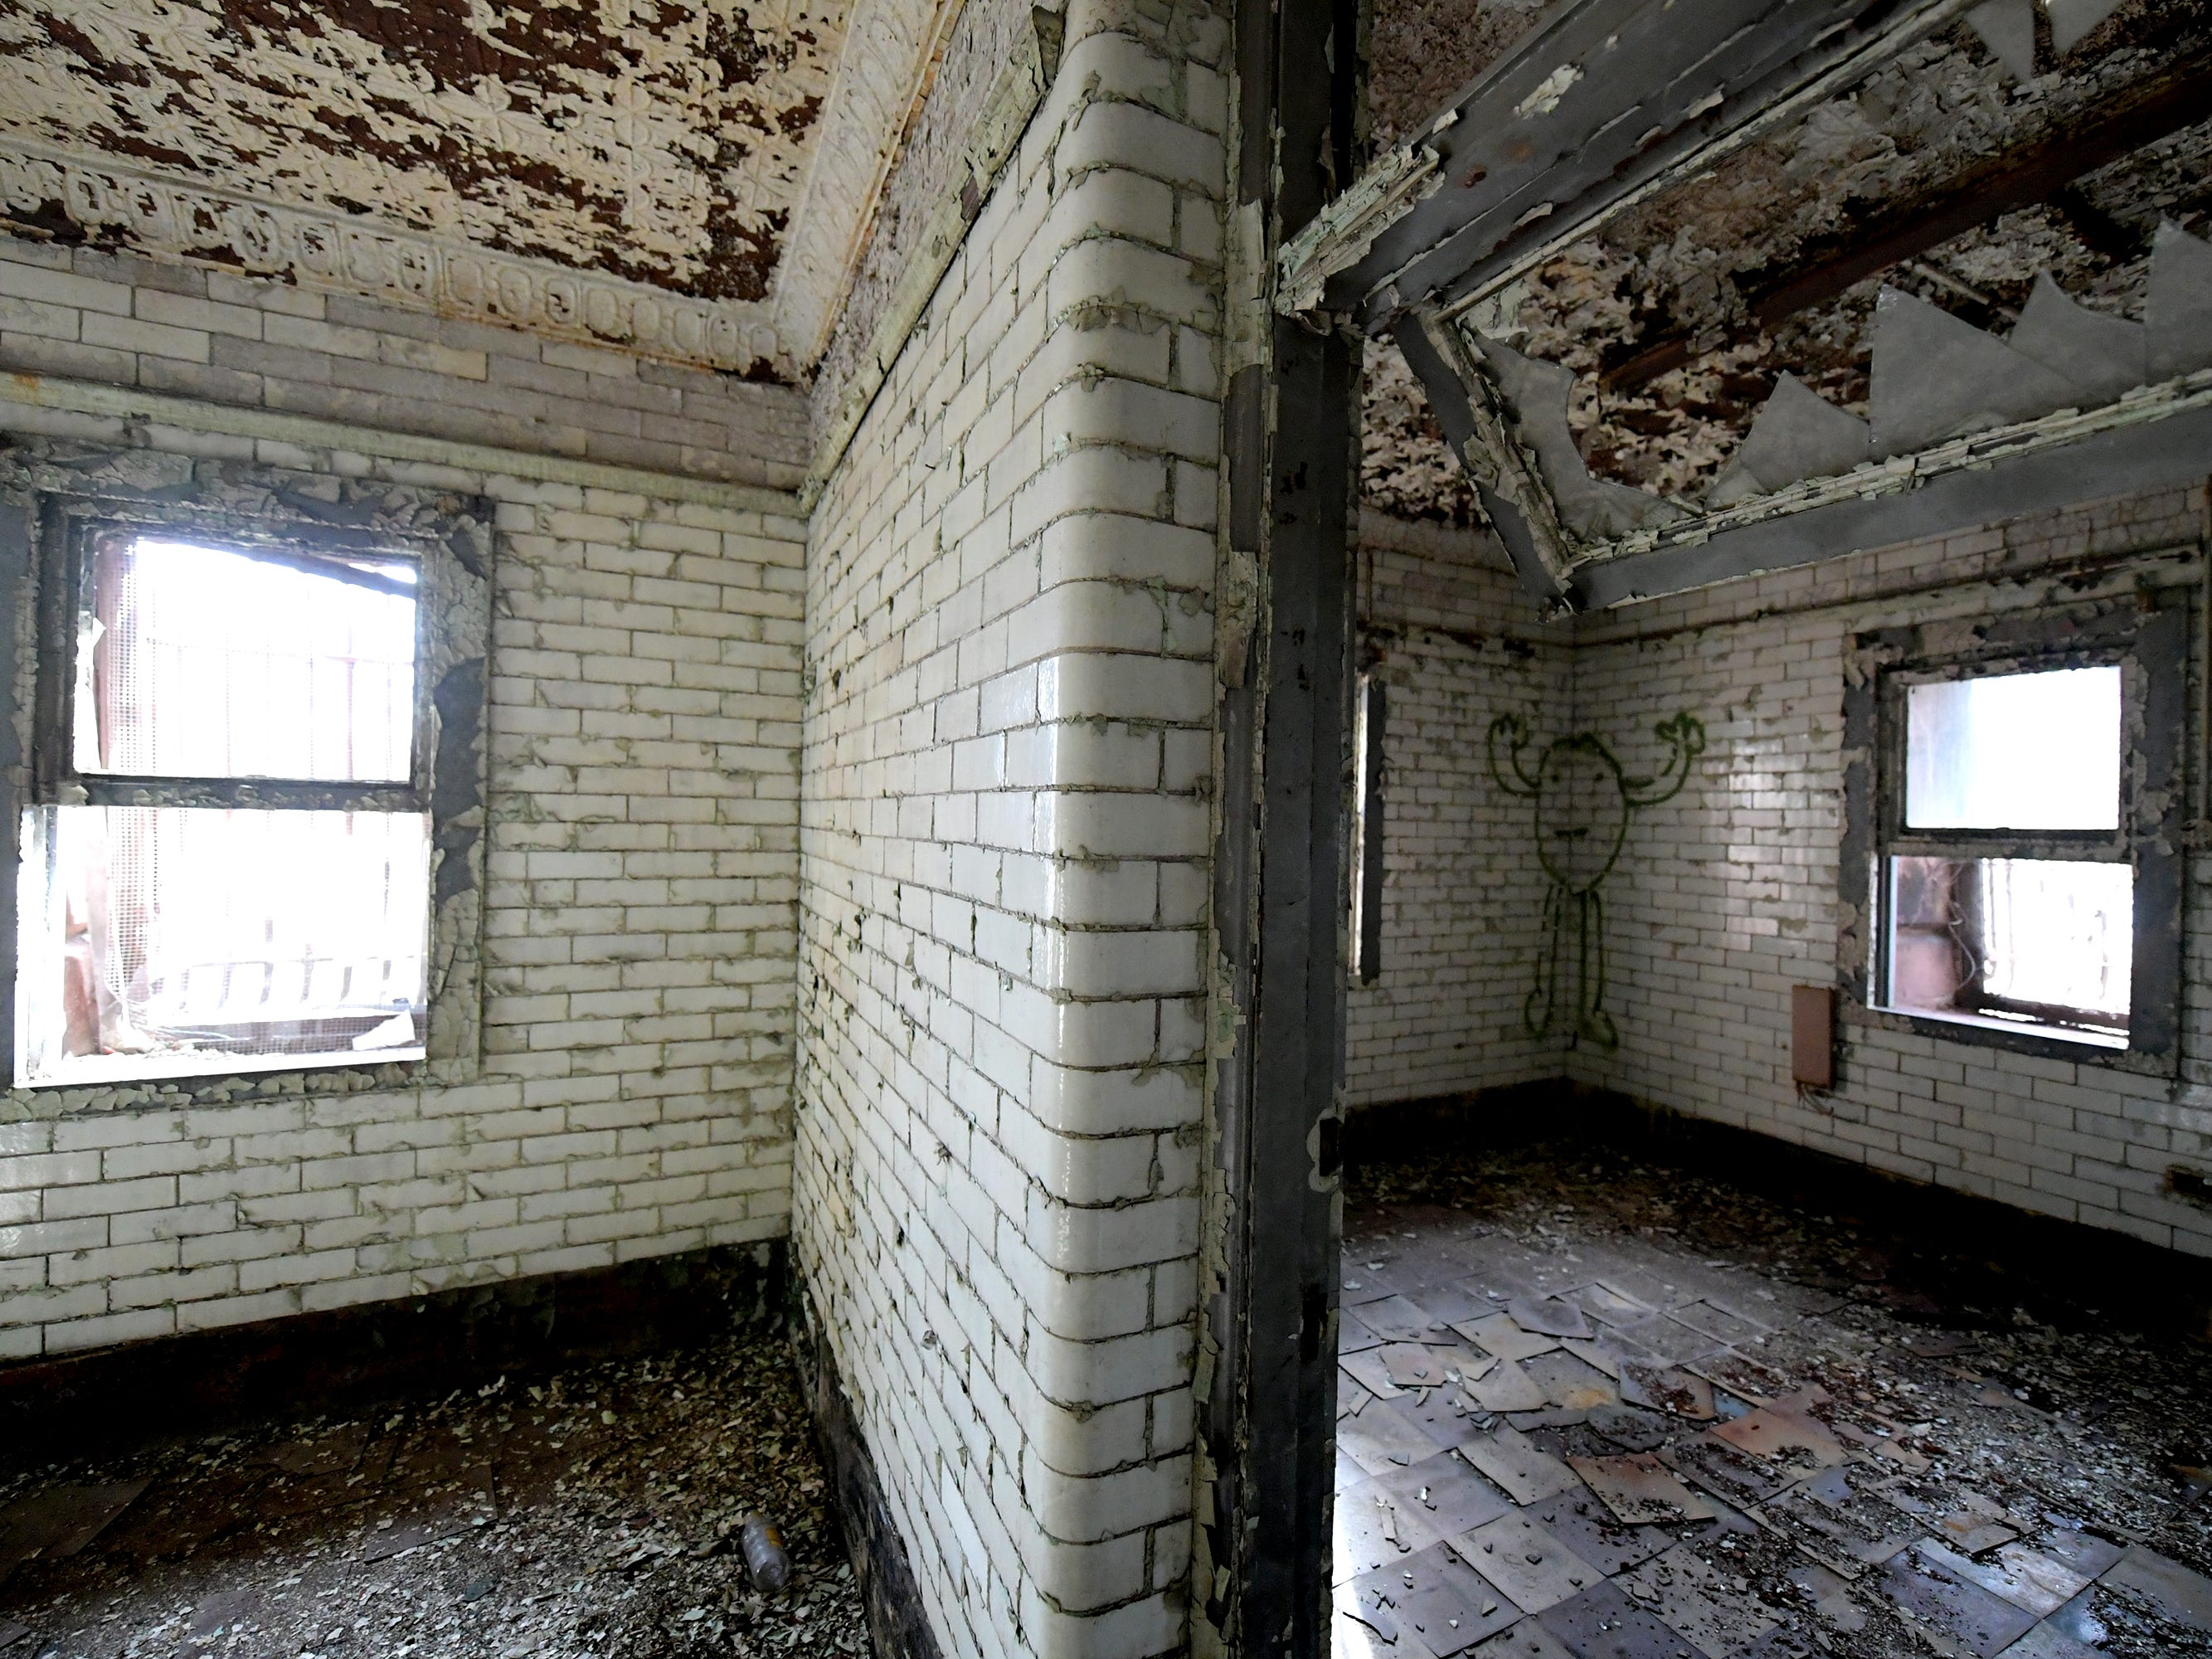 An office space in the former York County Prison on Chestnut Street in York City Wednesday, Nov. 28, 2018. United Fiber and Data has purchased the building and plans to incorporate the structure into a data center to accompany a 400-mile fiber-optic network it's building between New York and Virginia. Bill Kalina photo